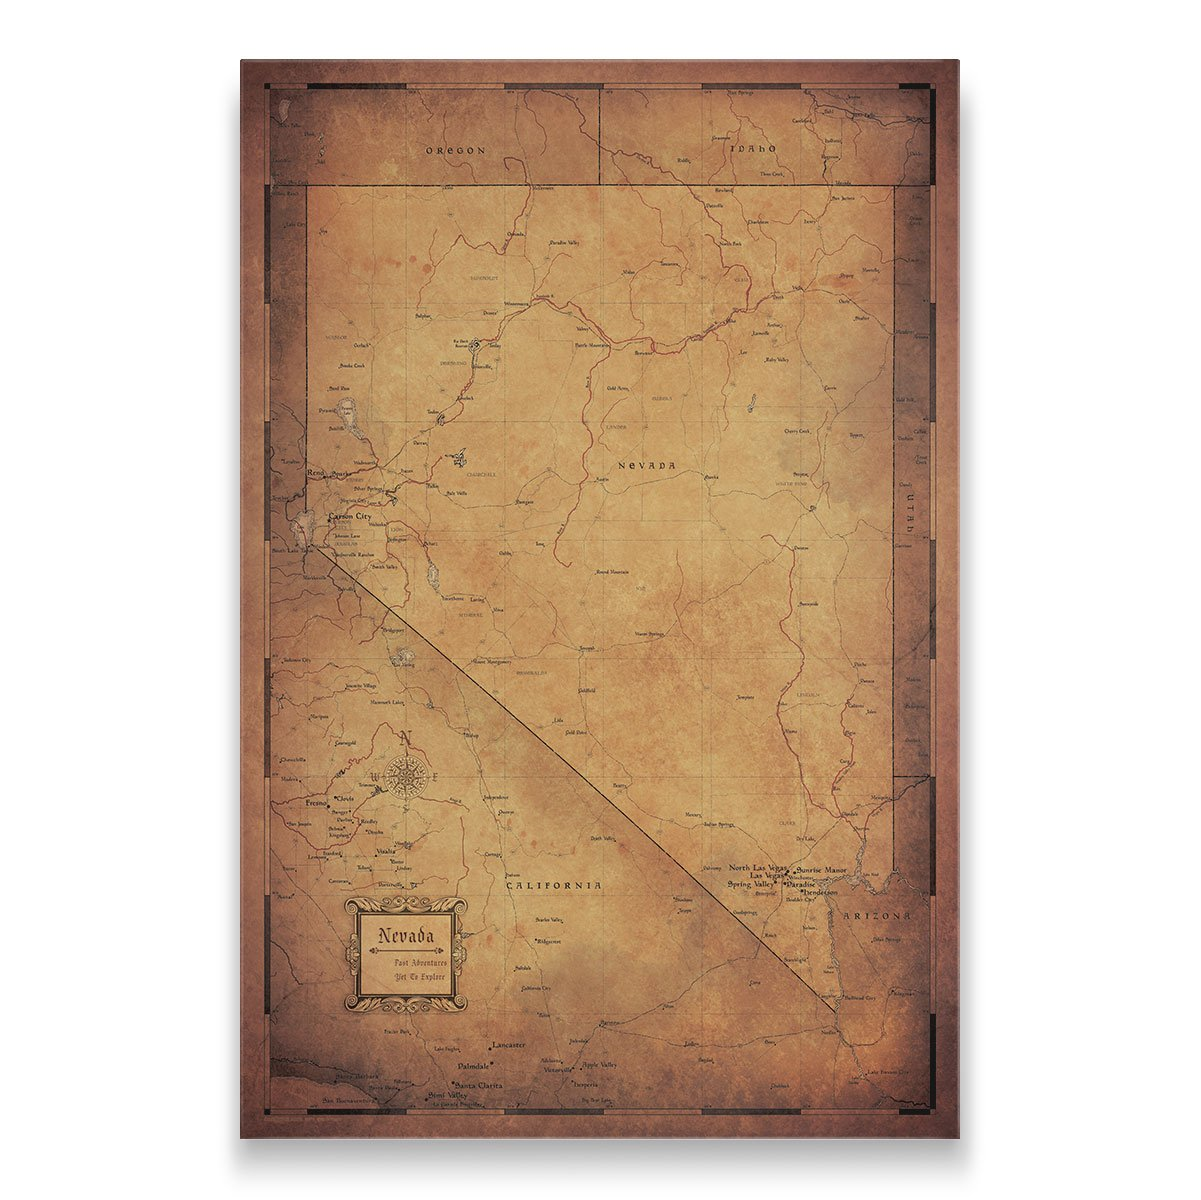 Nevada Travel Map Pin Board w/Push Pins: Golden Aged – Conquest Maps LLC